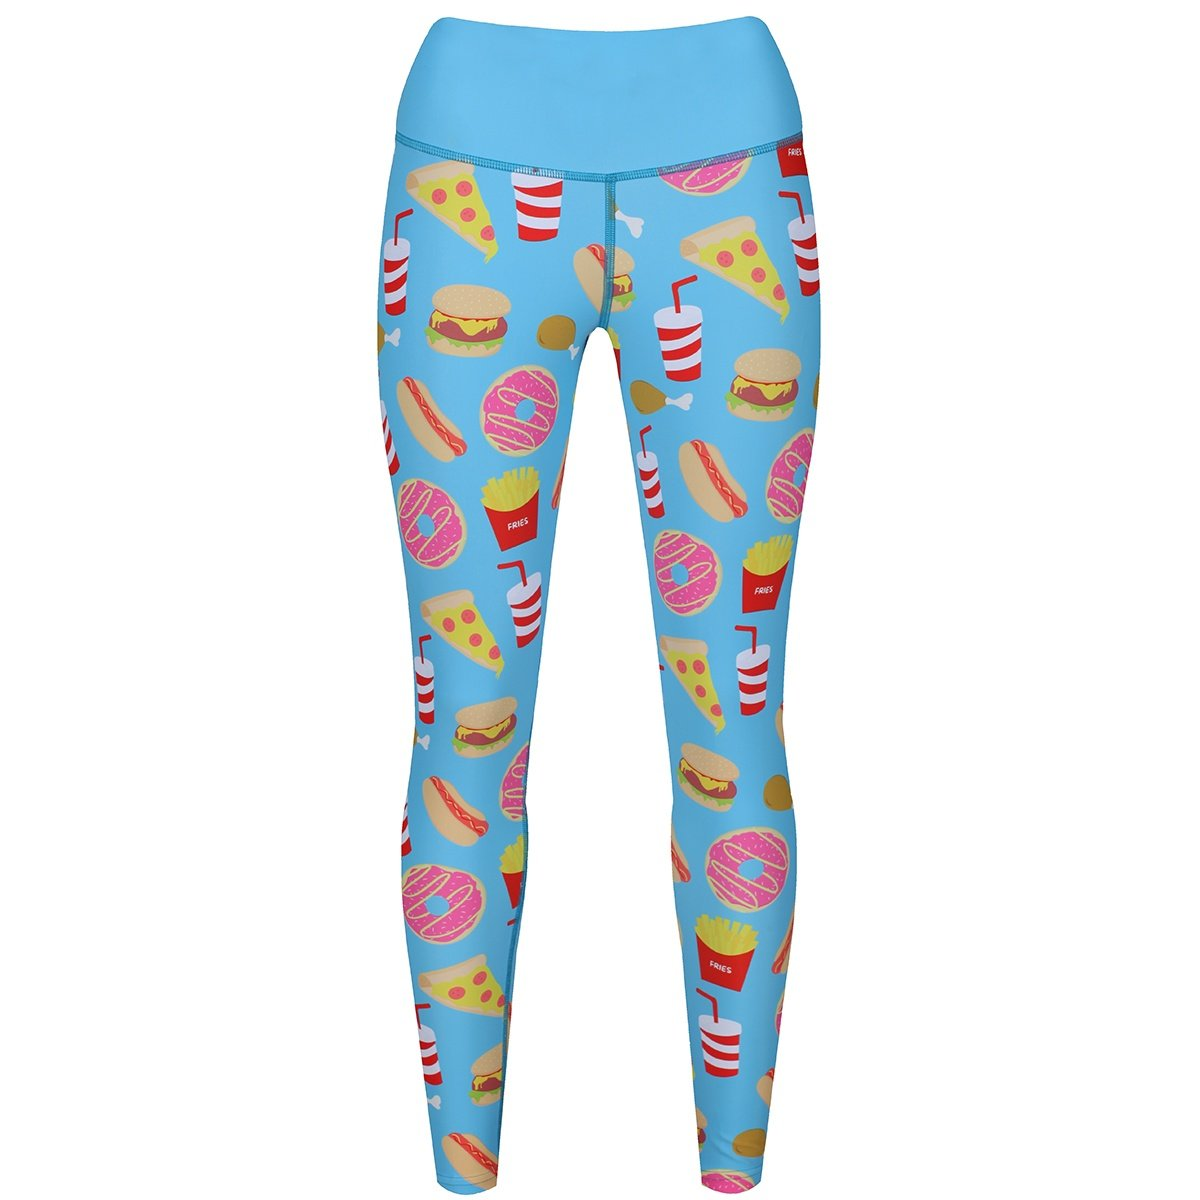 Fast Food Leggings 'Limited Edition' (Pre-order)